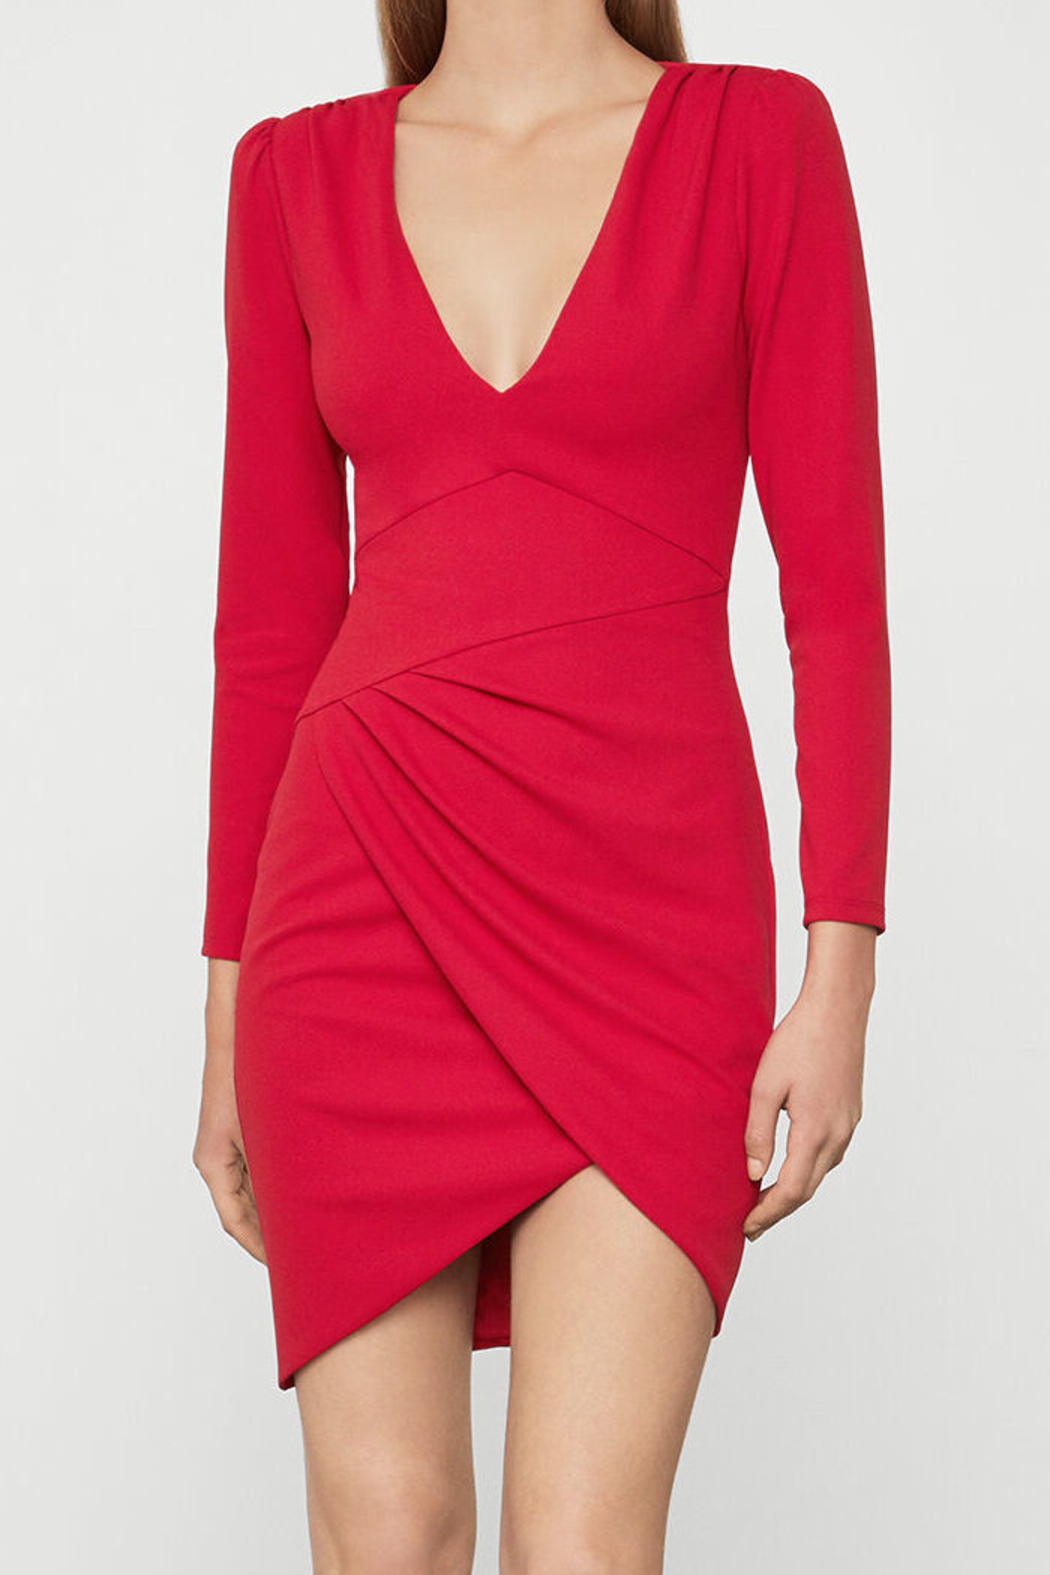 BCBG MAXAZRIA Long Sleeve Dress - Front Cropped Image